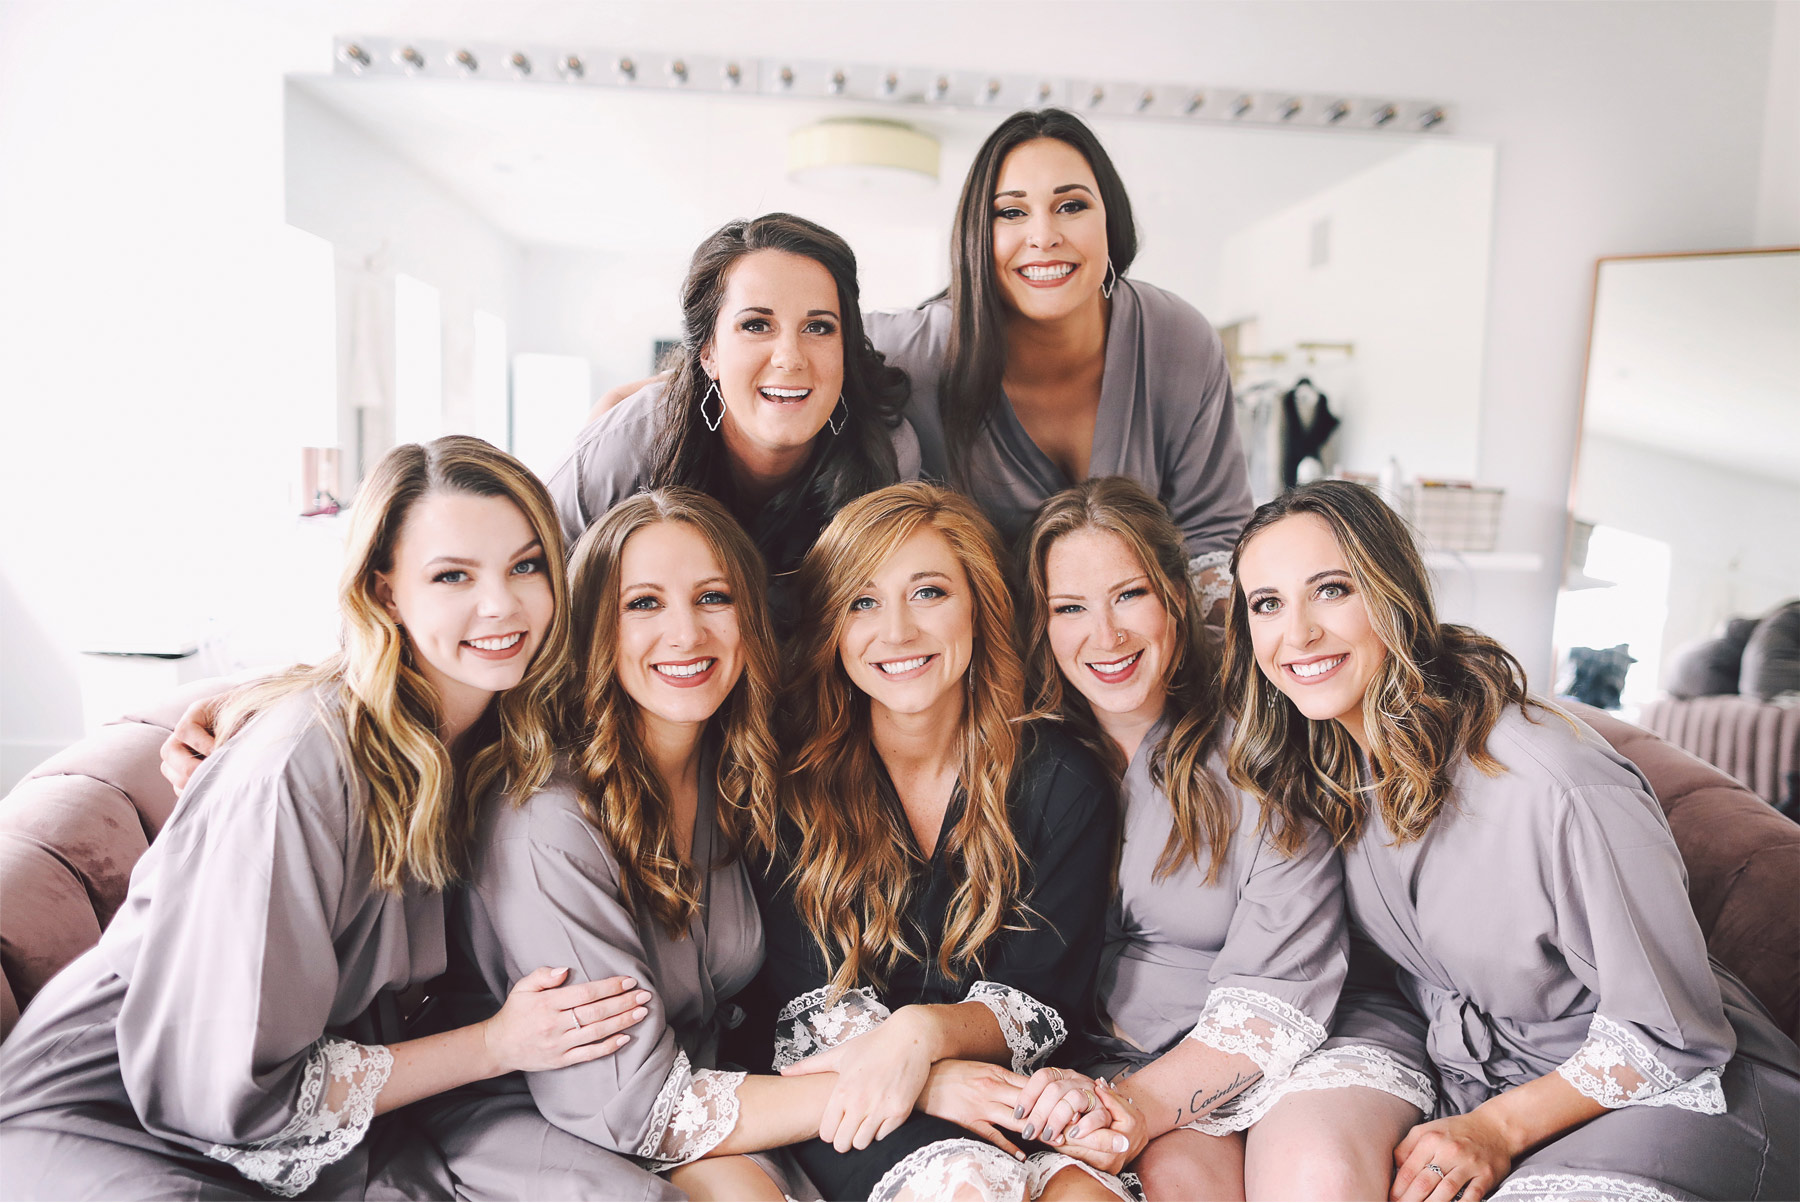 01-Minneapolis-Minnesota-Wedding-Photography-by-Andrew-Vick-Photography-Hutton-House-Bridesmaids-Robes-Getting-Ready-Kelsey-and-Matt.jpg